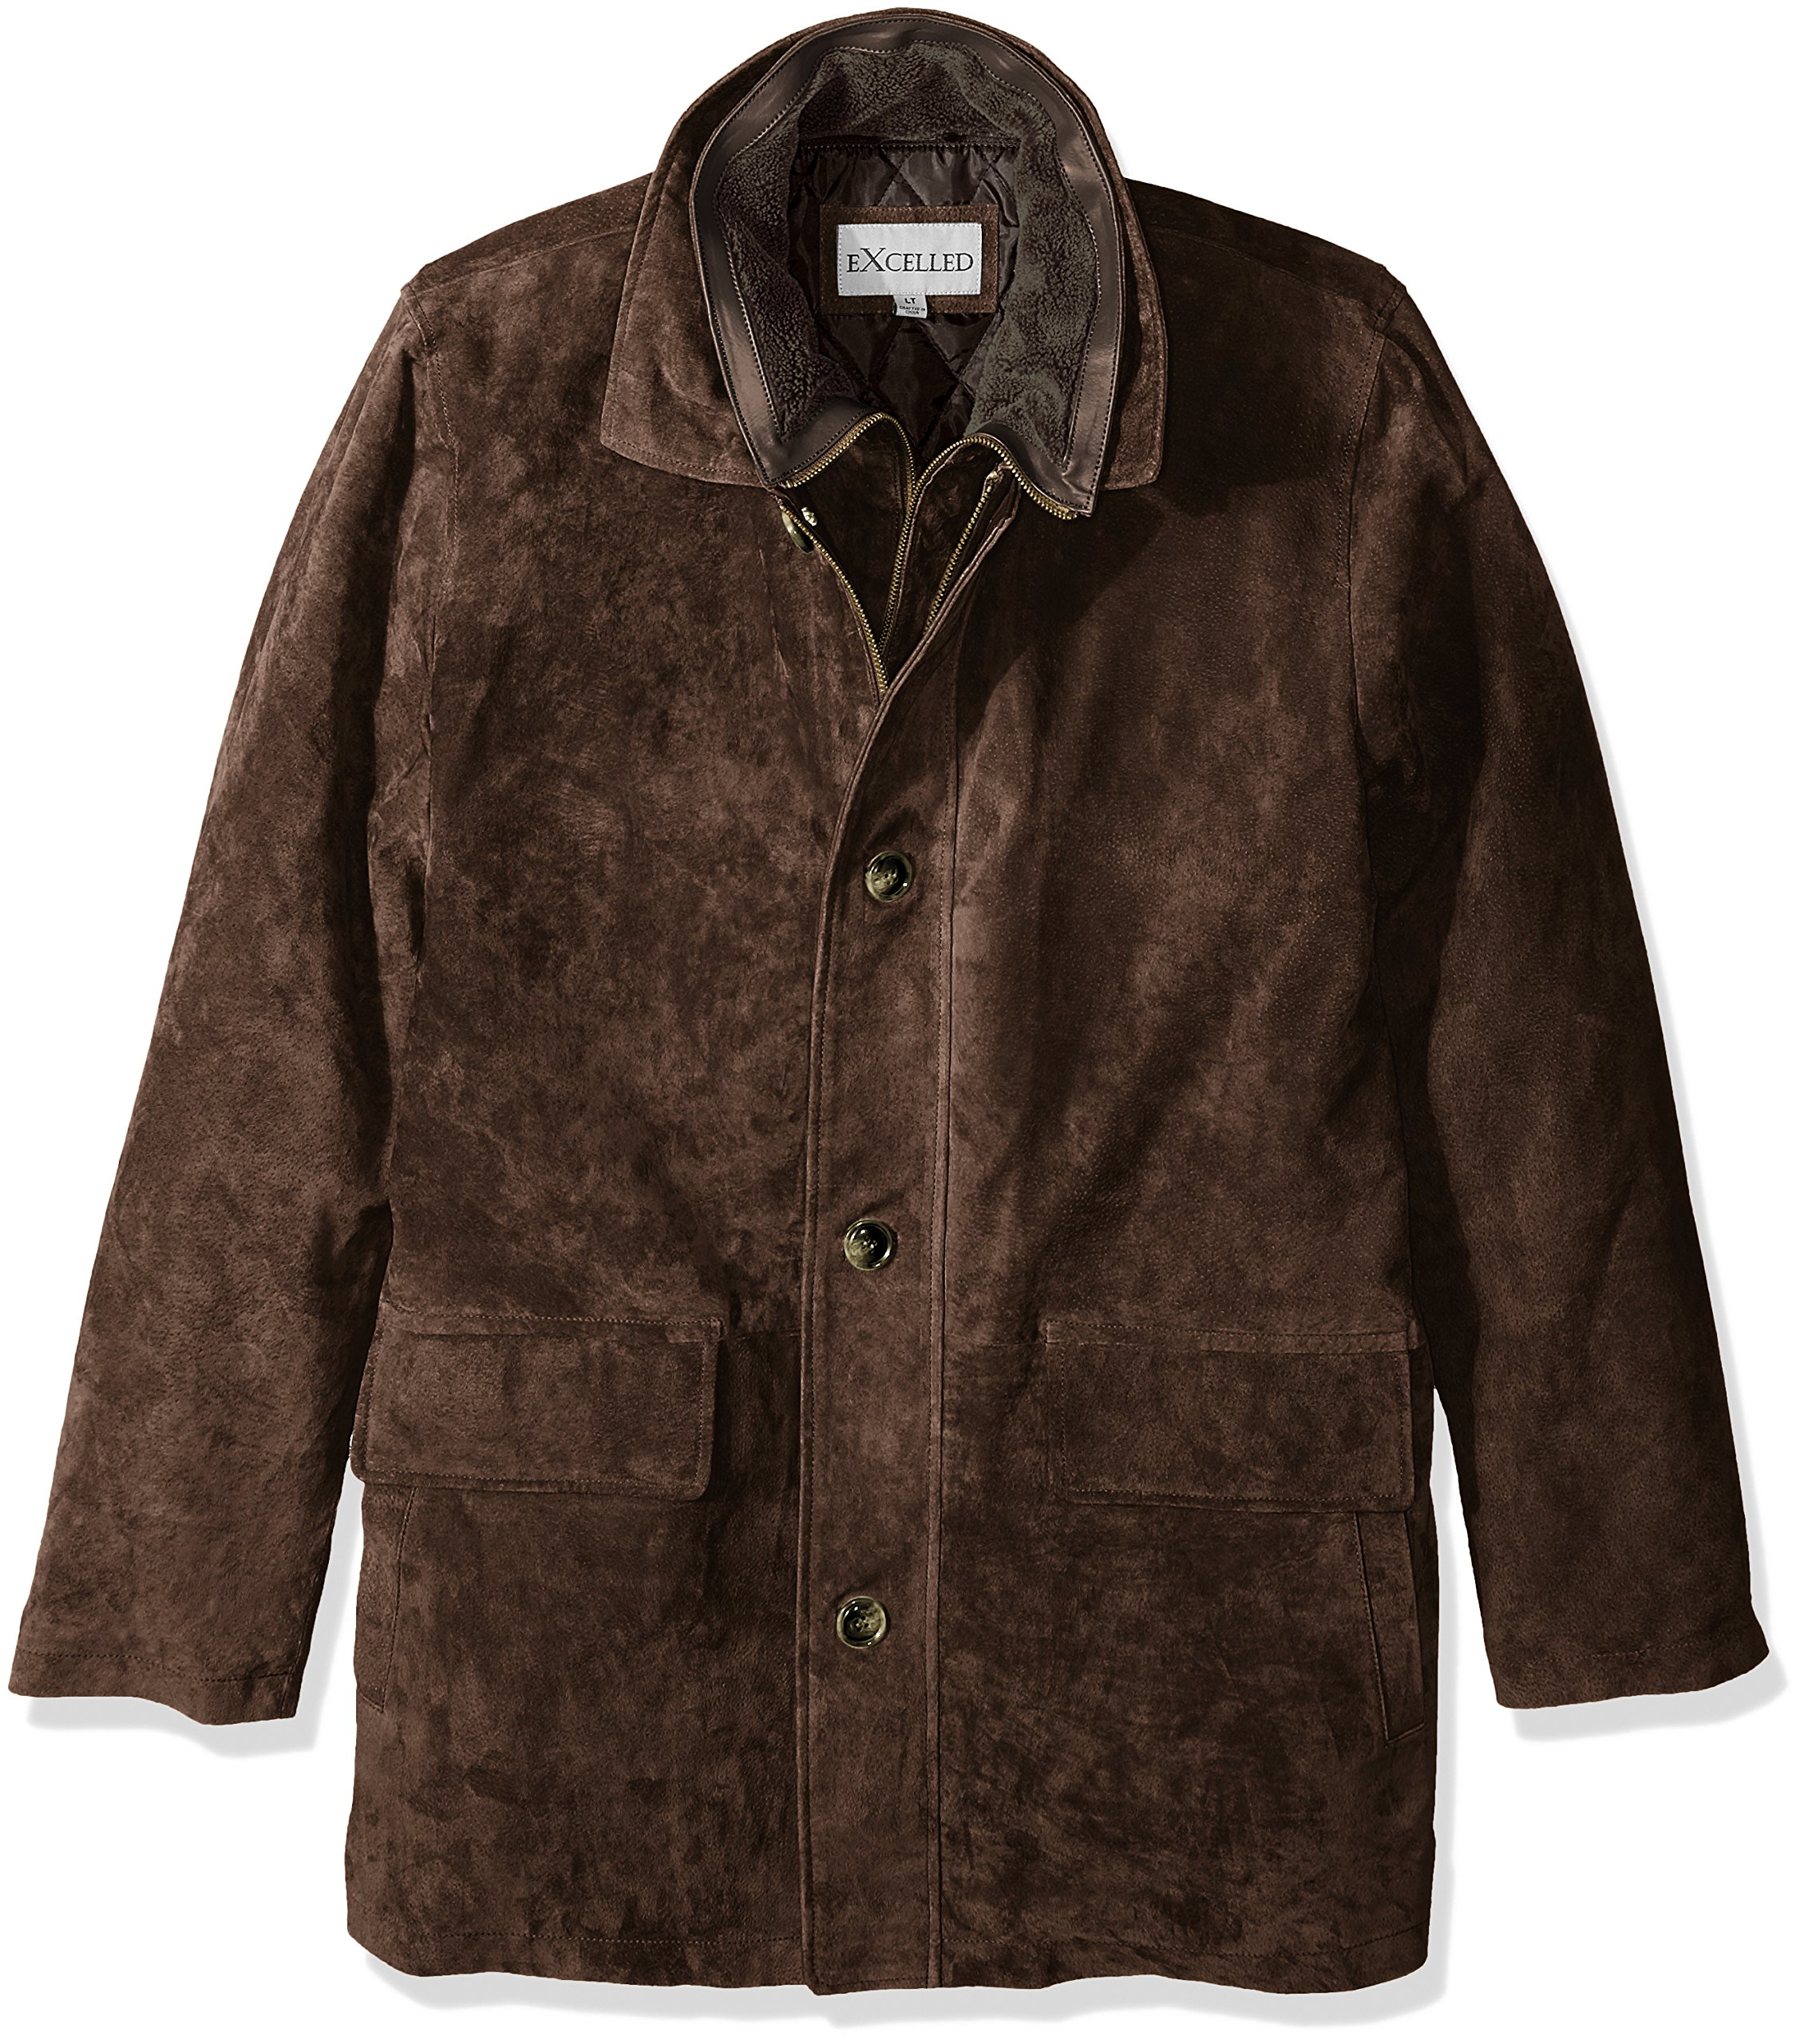 Excelled Men's Big and Tall Suede Feel Jacket, Brown, 2XLT